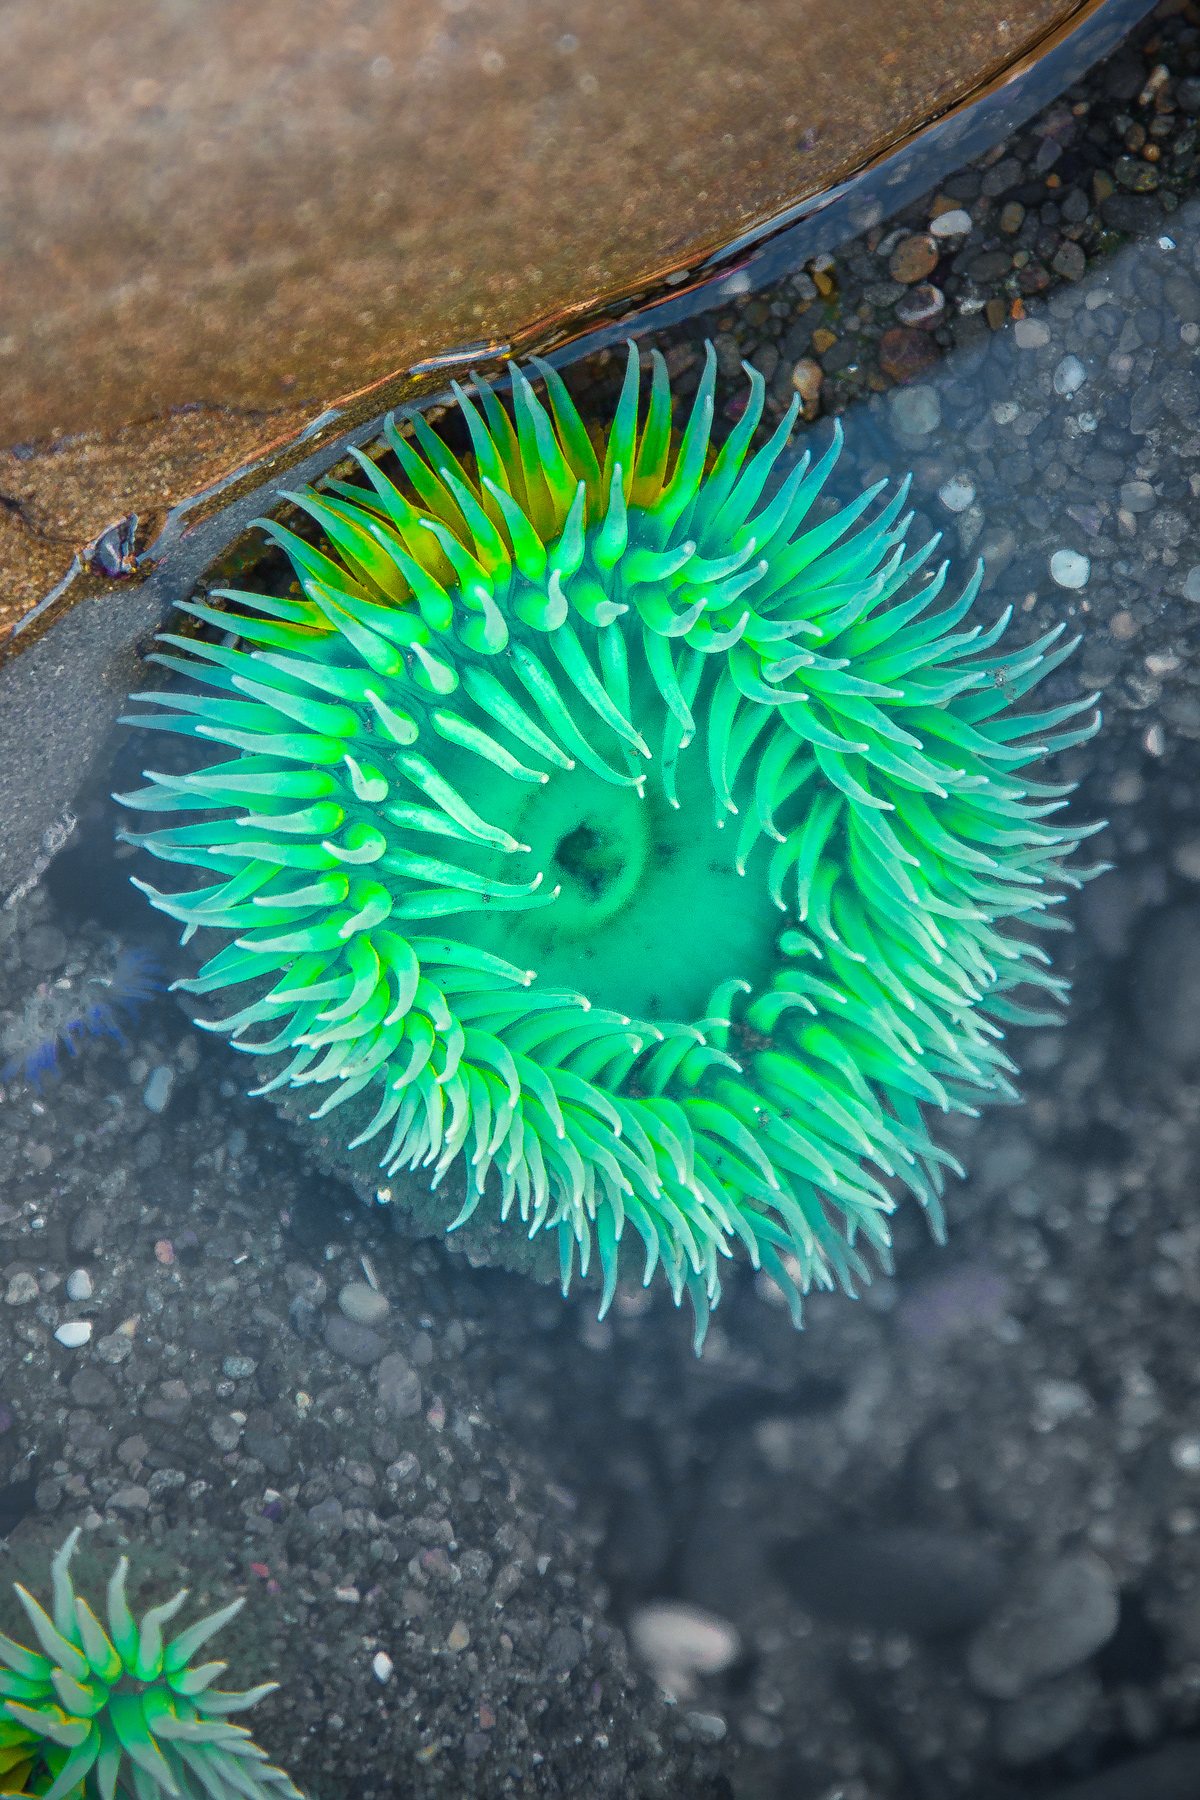 Beautiful Green Sea Anemone at Beach 4 on the Olympic Peninsula of Washington State via J5MM.com